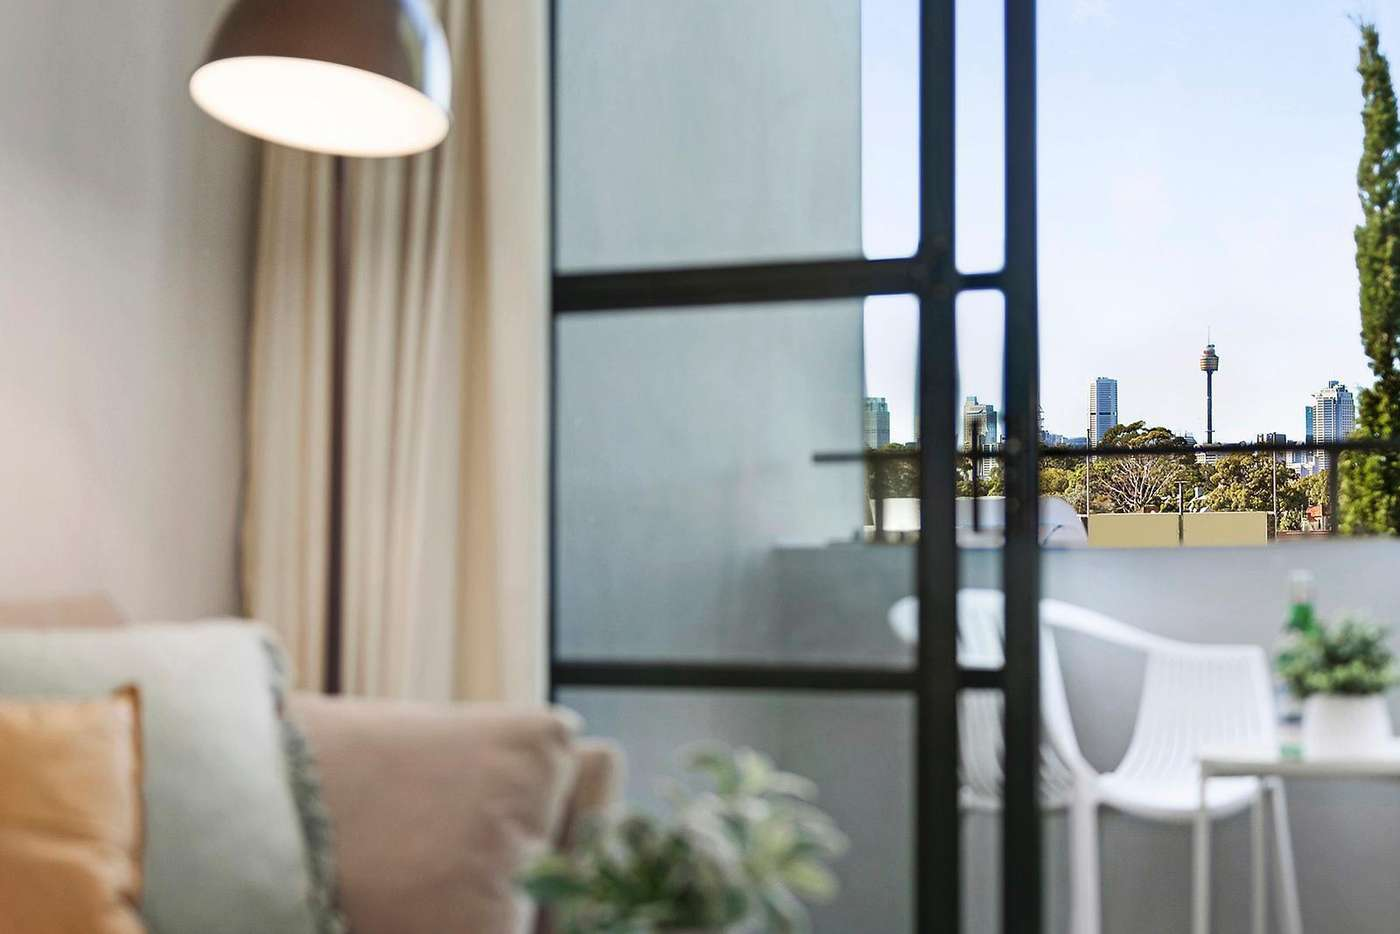 Main view of Homely apartment listing, 301/1 Phillip Street, Petersham NSW 2049